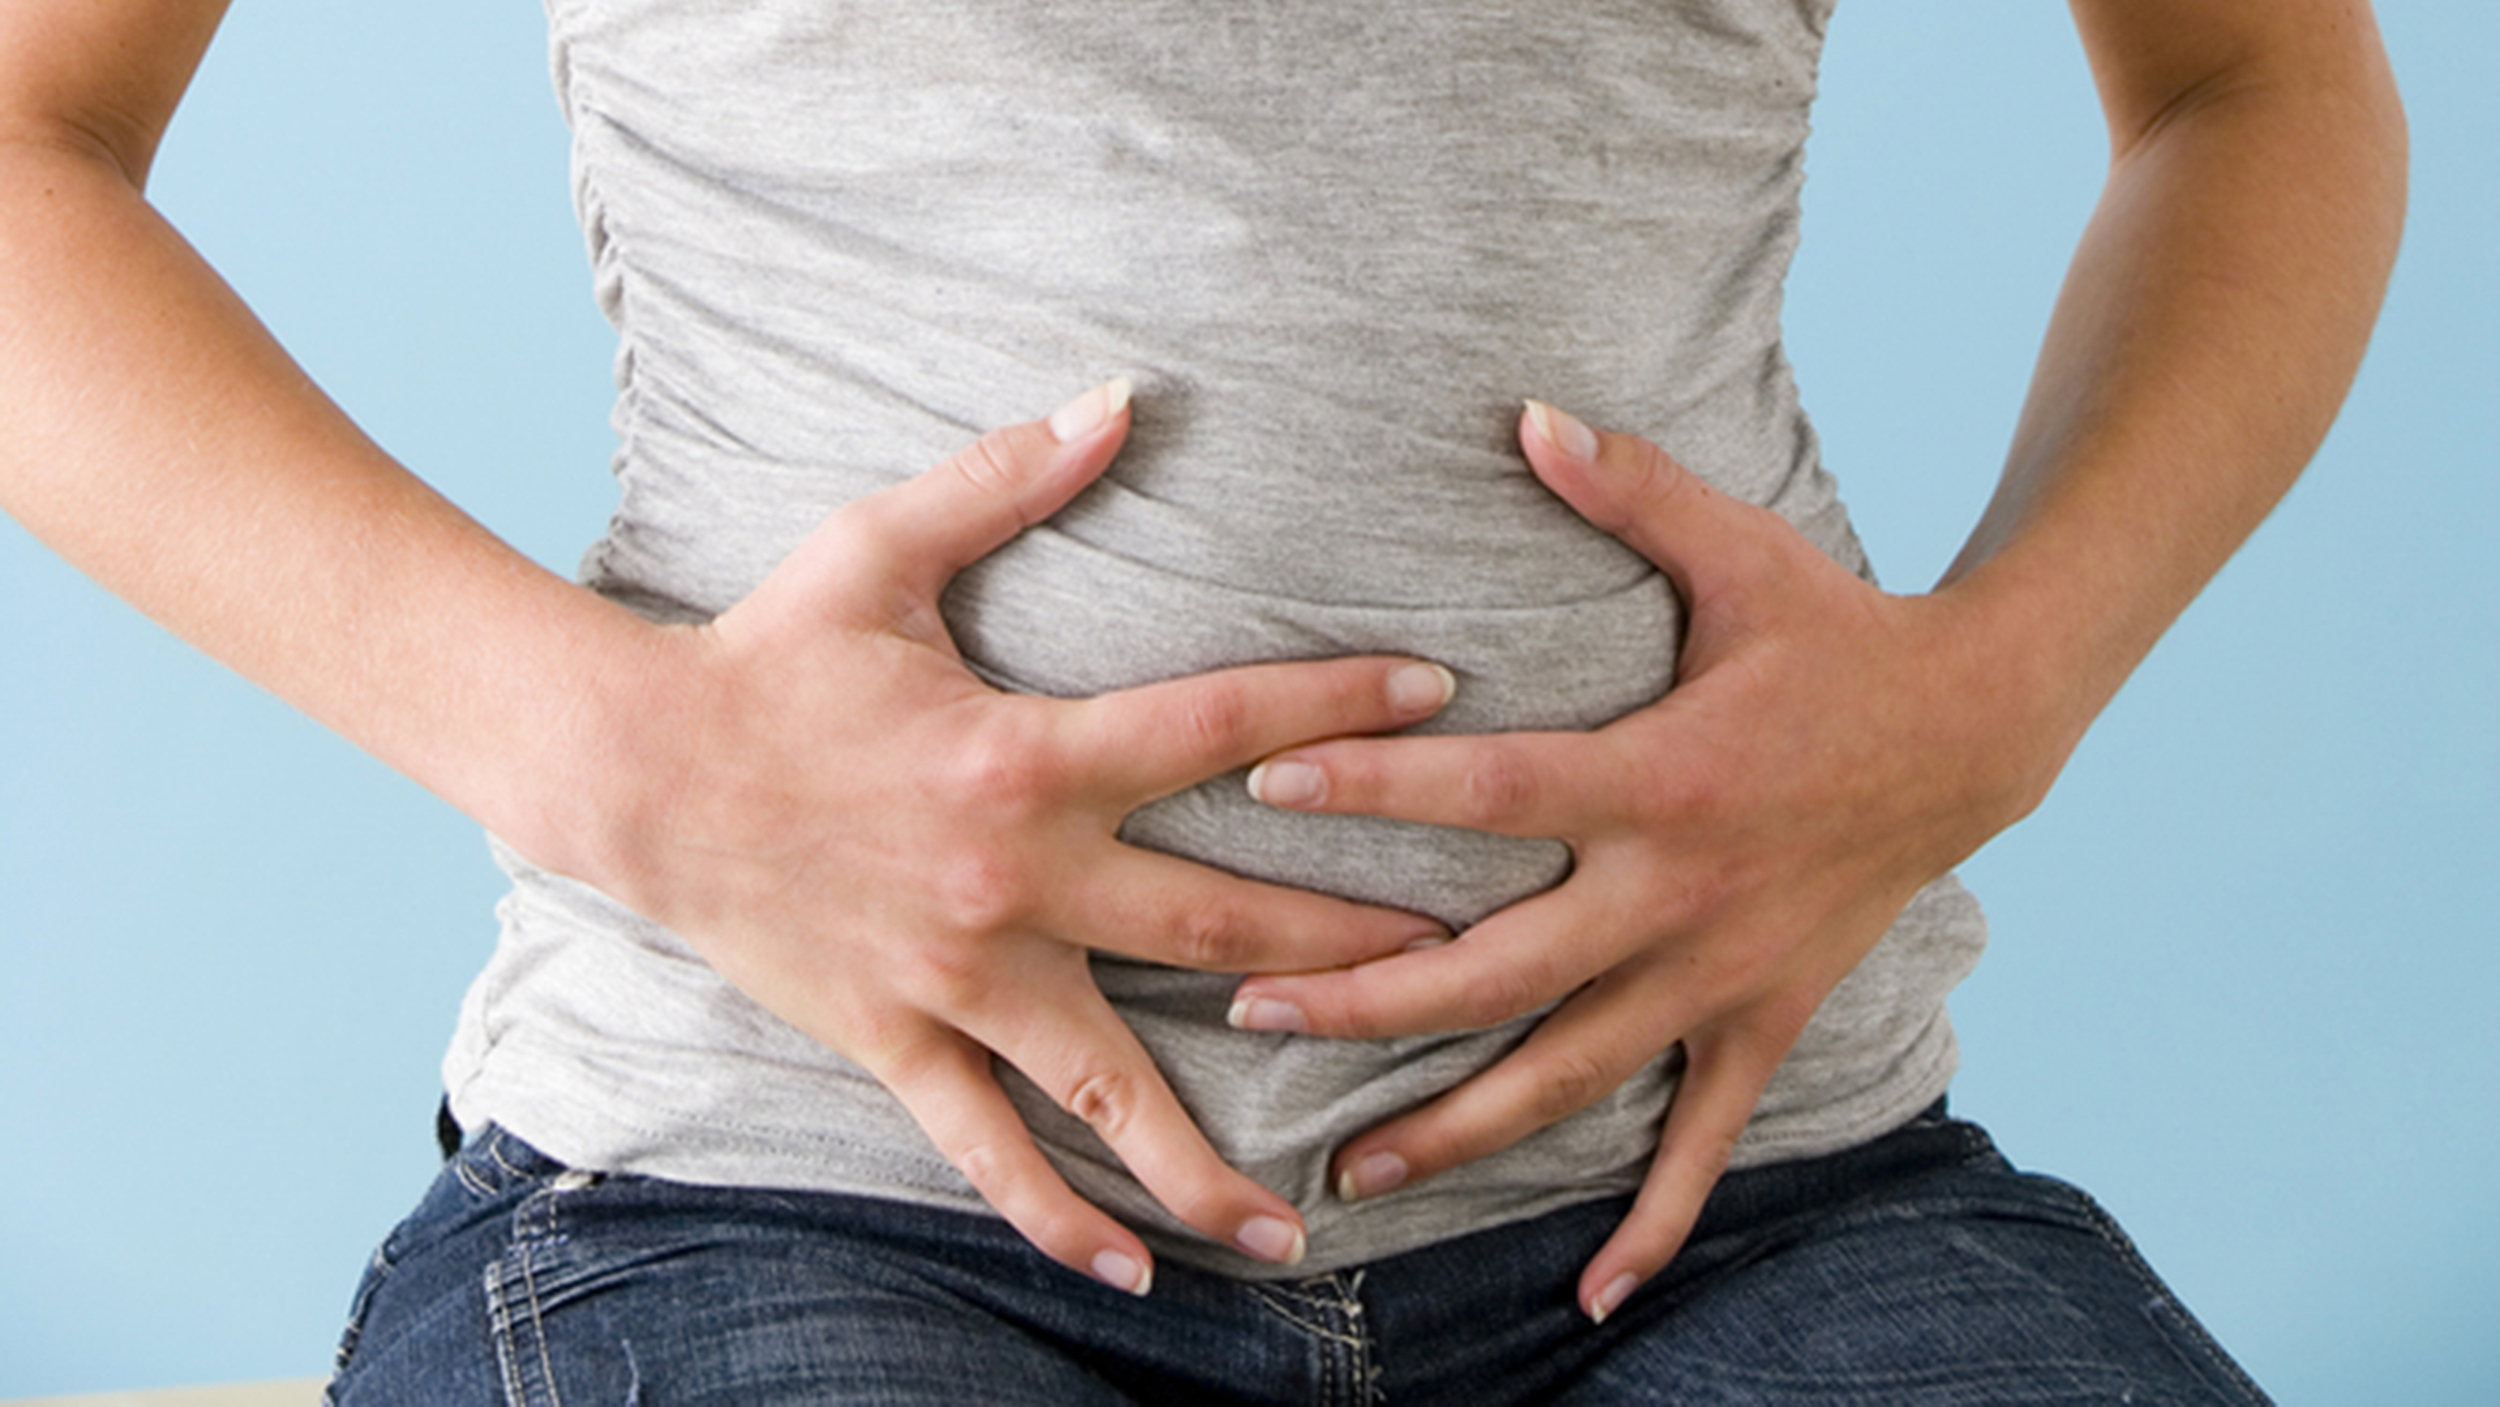 Stomach sharp pain in upper right abdomen and back female version